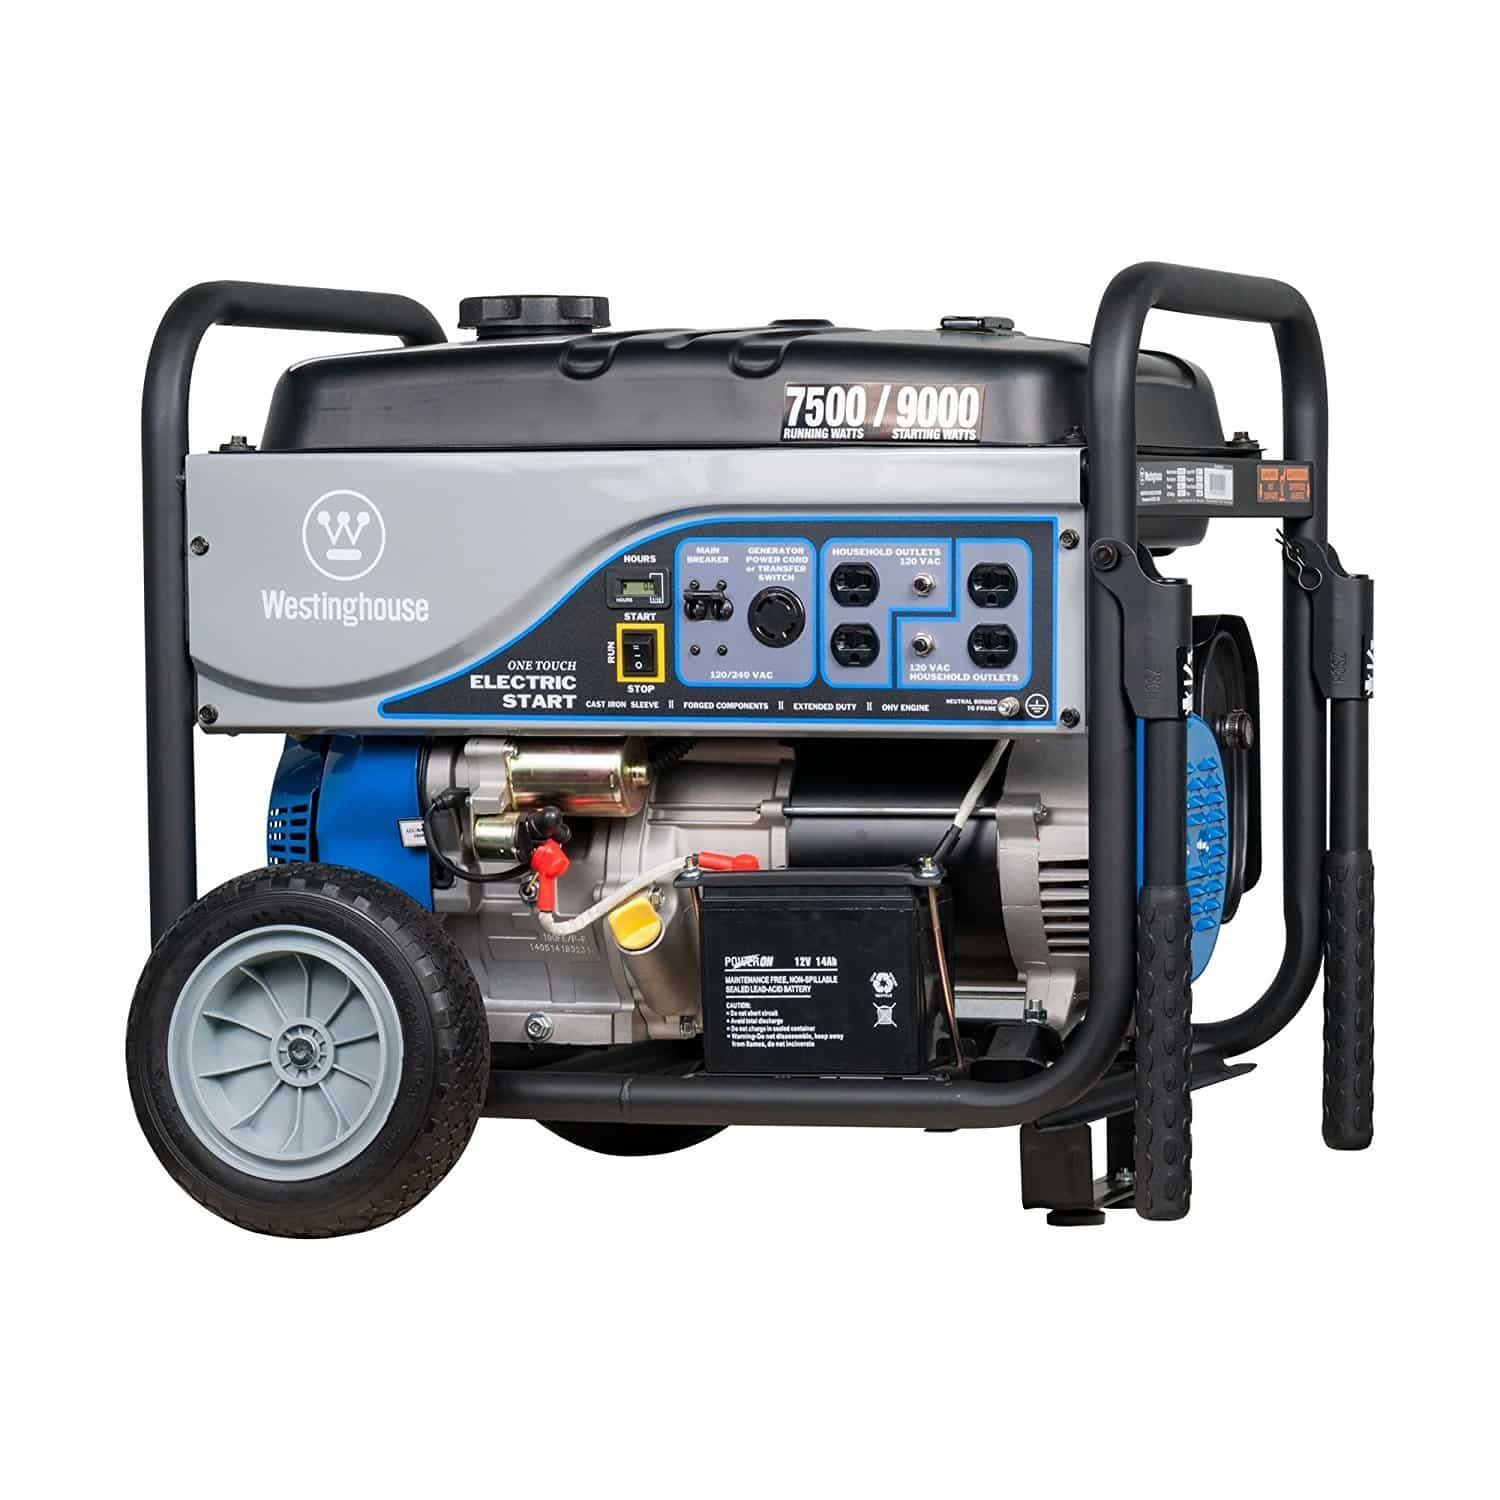 Westinghouse WH7500E Portable Generator Generator at Home Depot